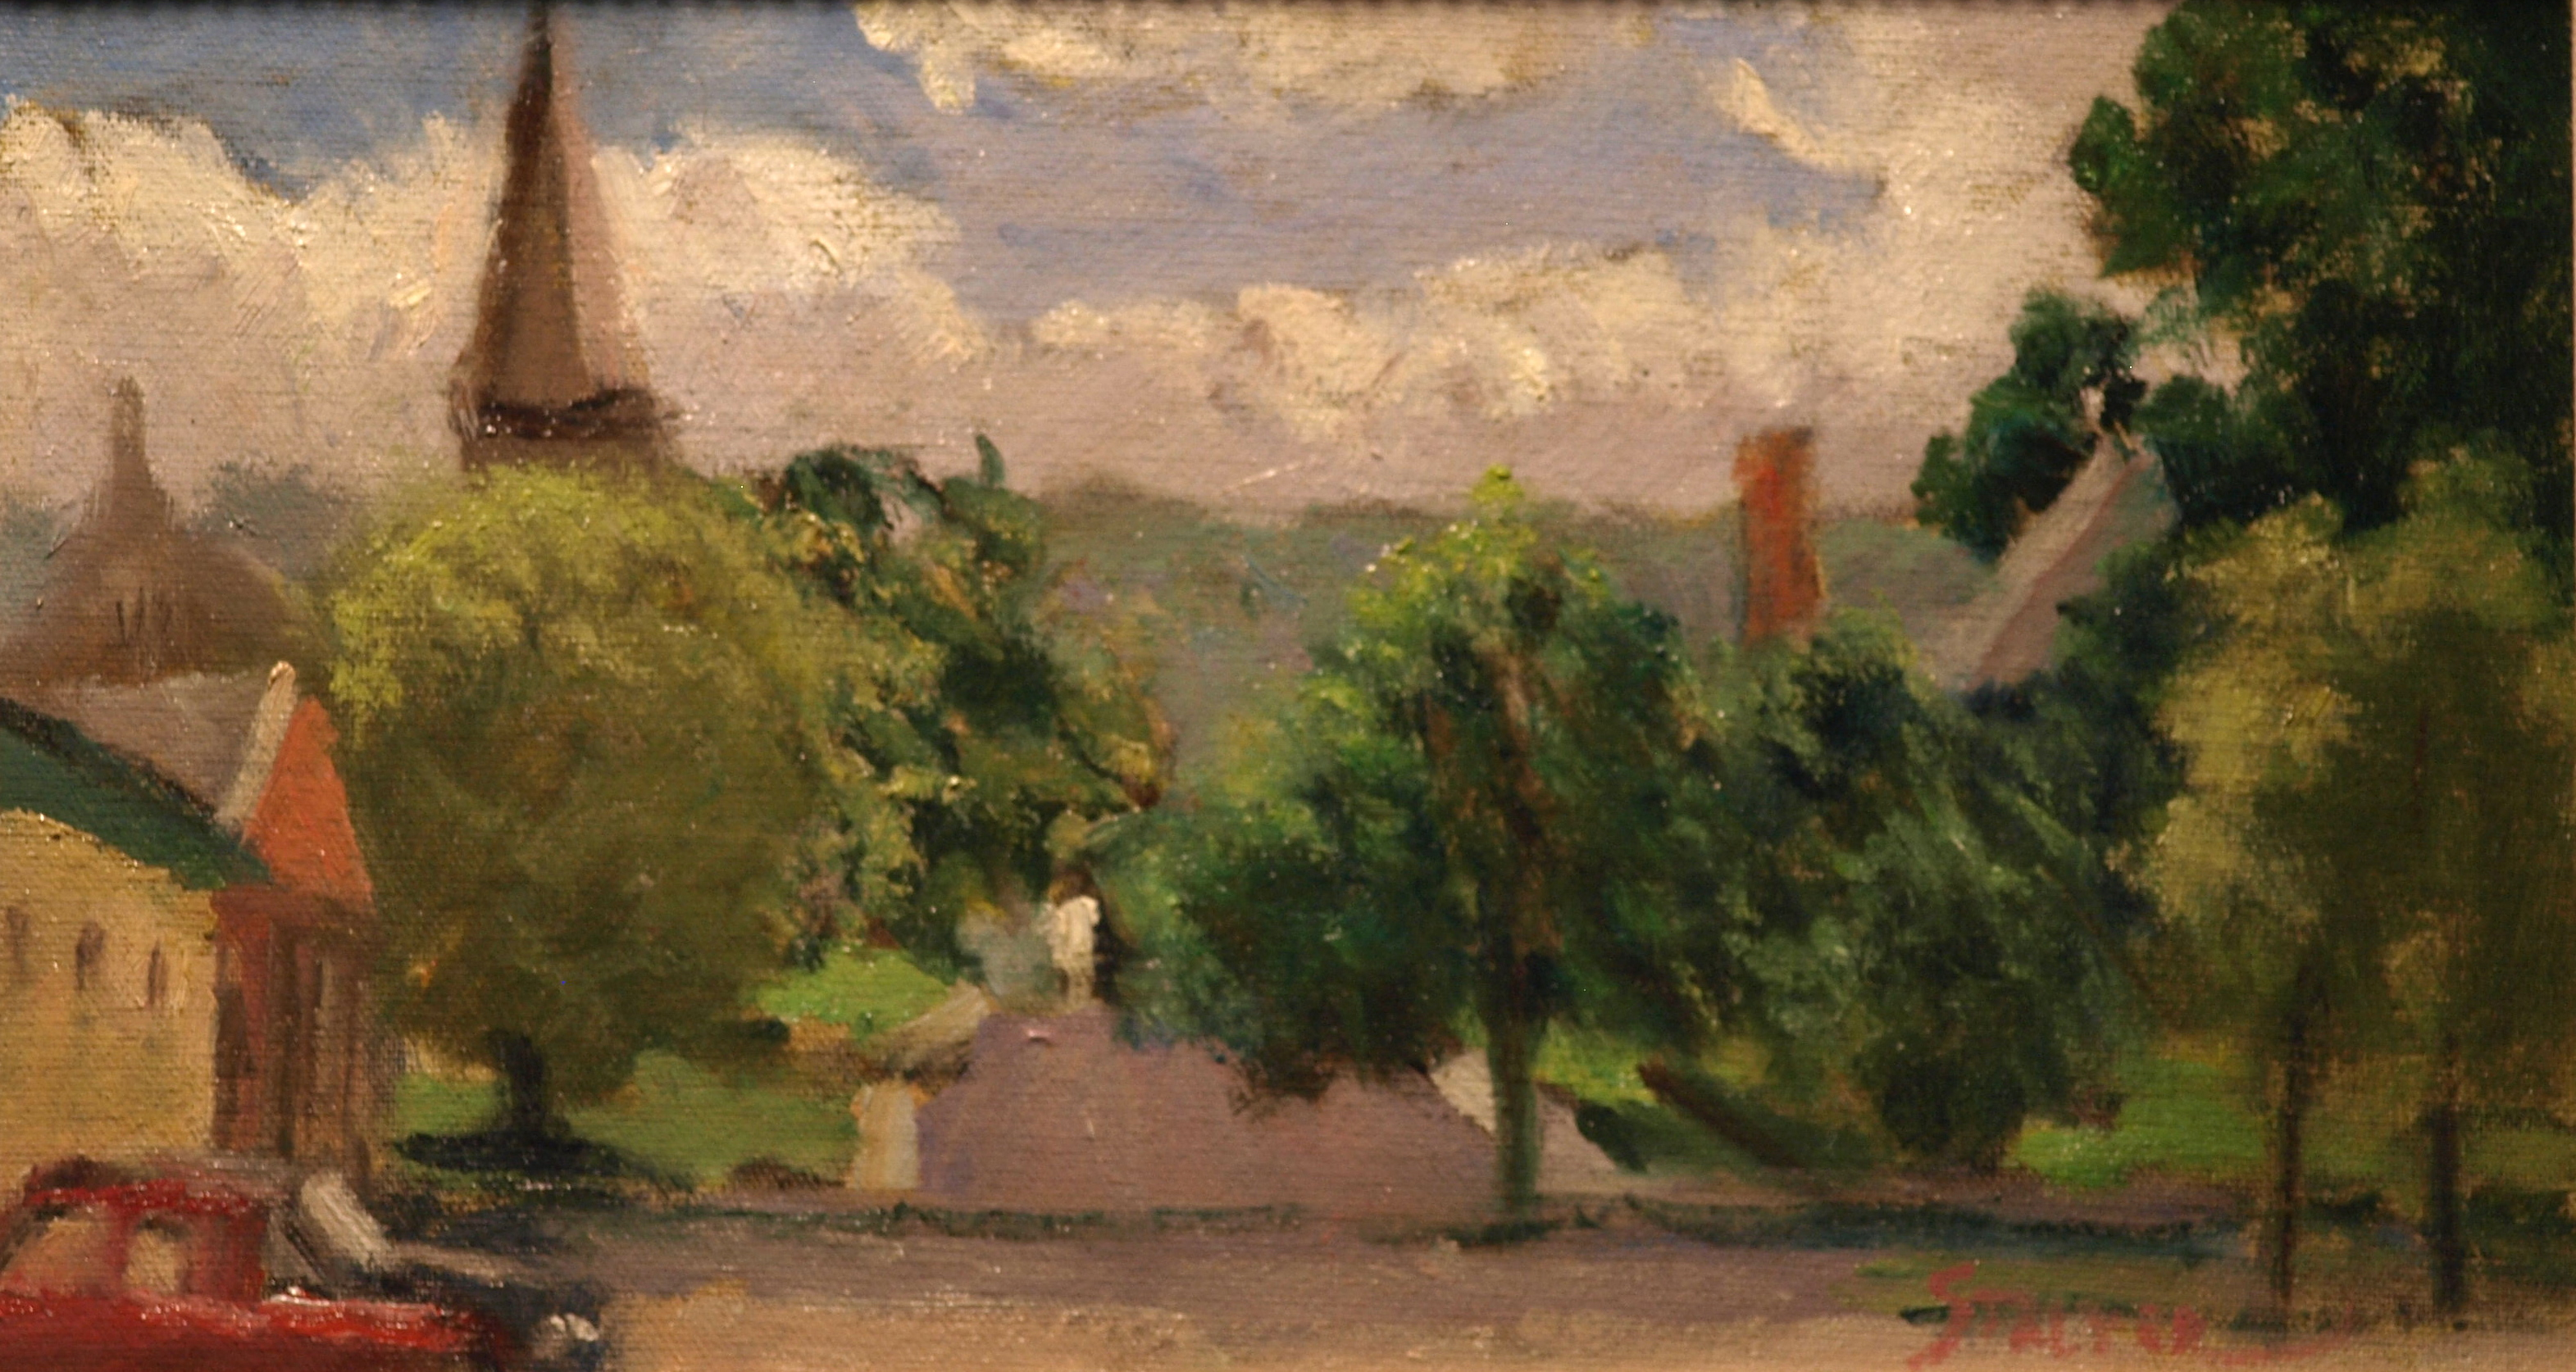 New Milford Green, Oil on Canvas on Panel, 8 x 14 Inches, by Richard Stalter, $225